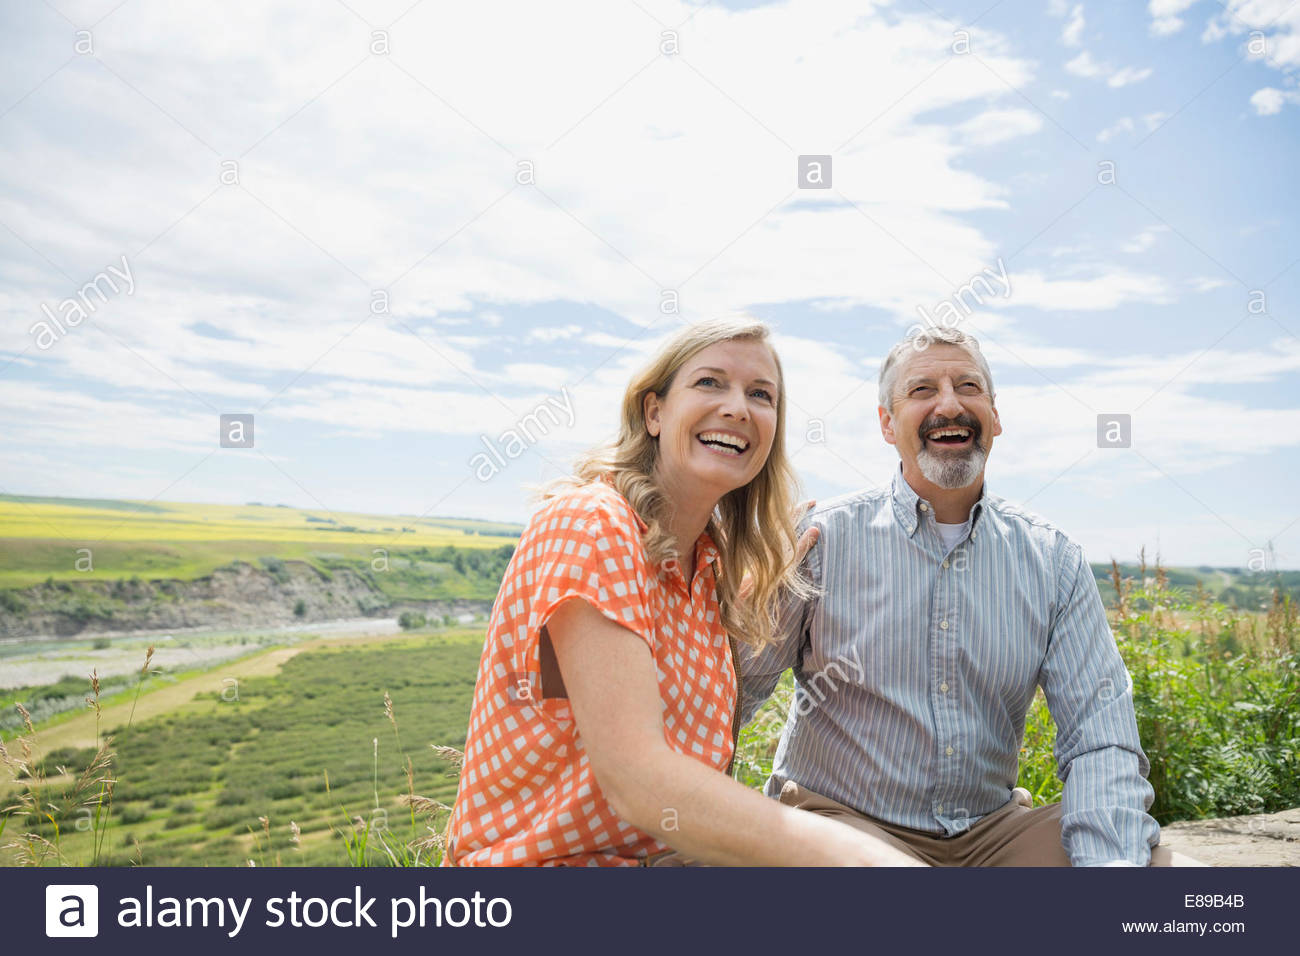 Couple laughing outdoors with countryside in background Stock Photo